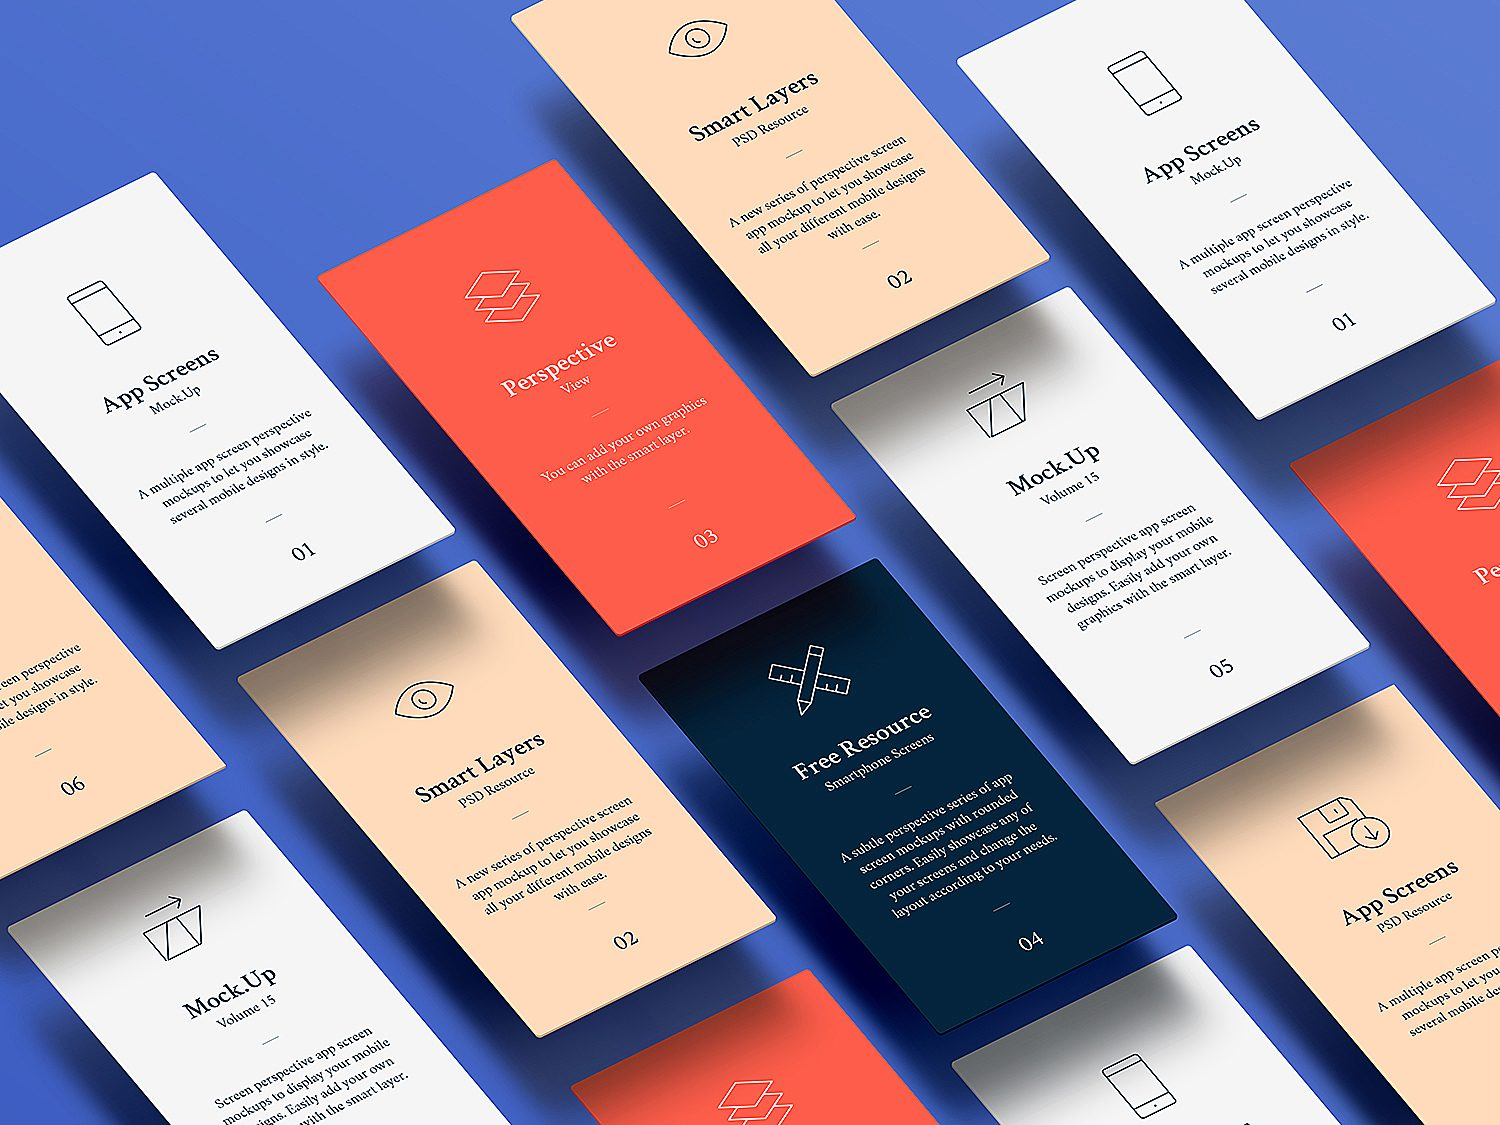 App Screens Mockup PSD